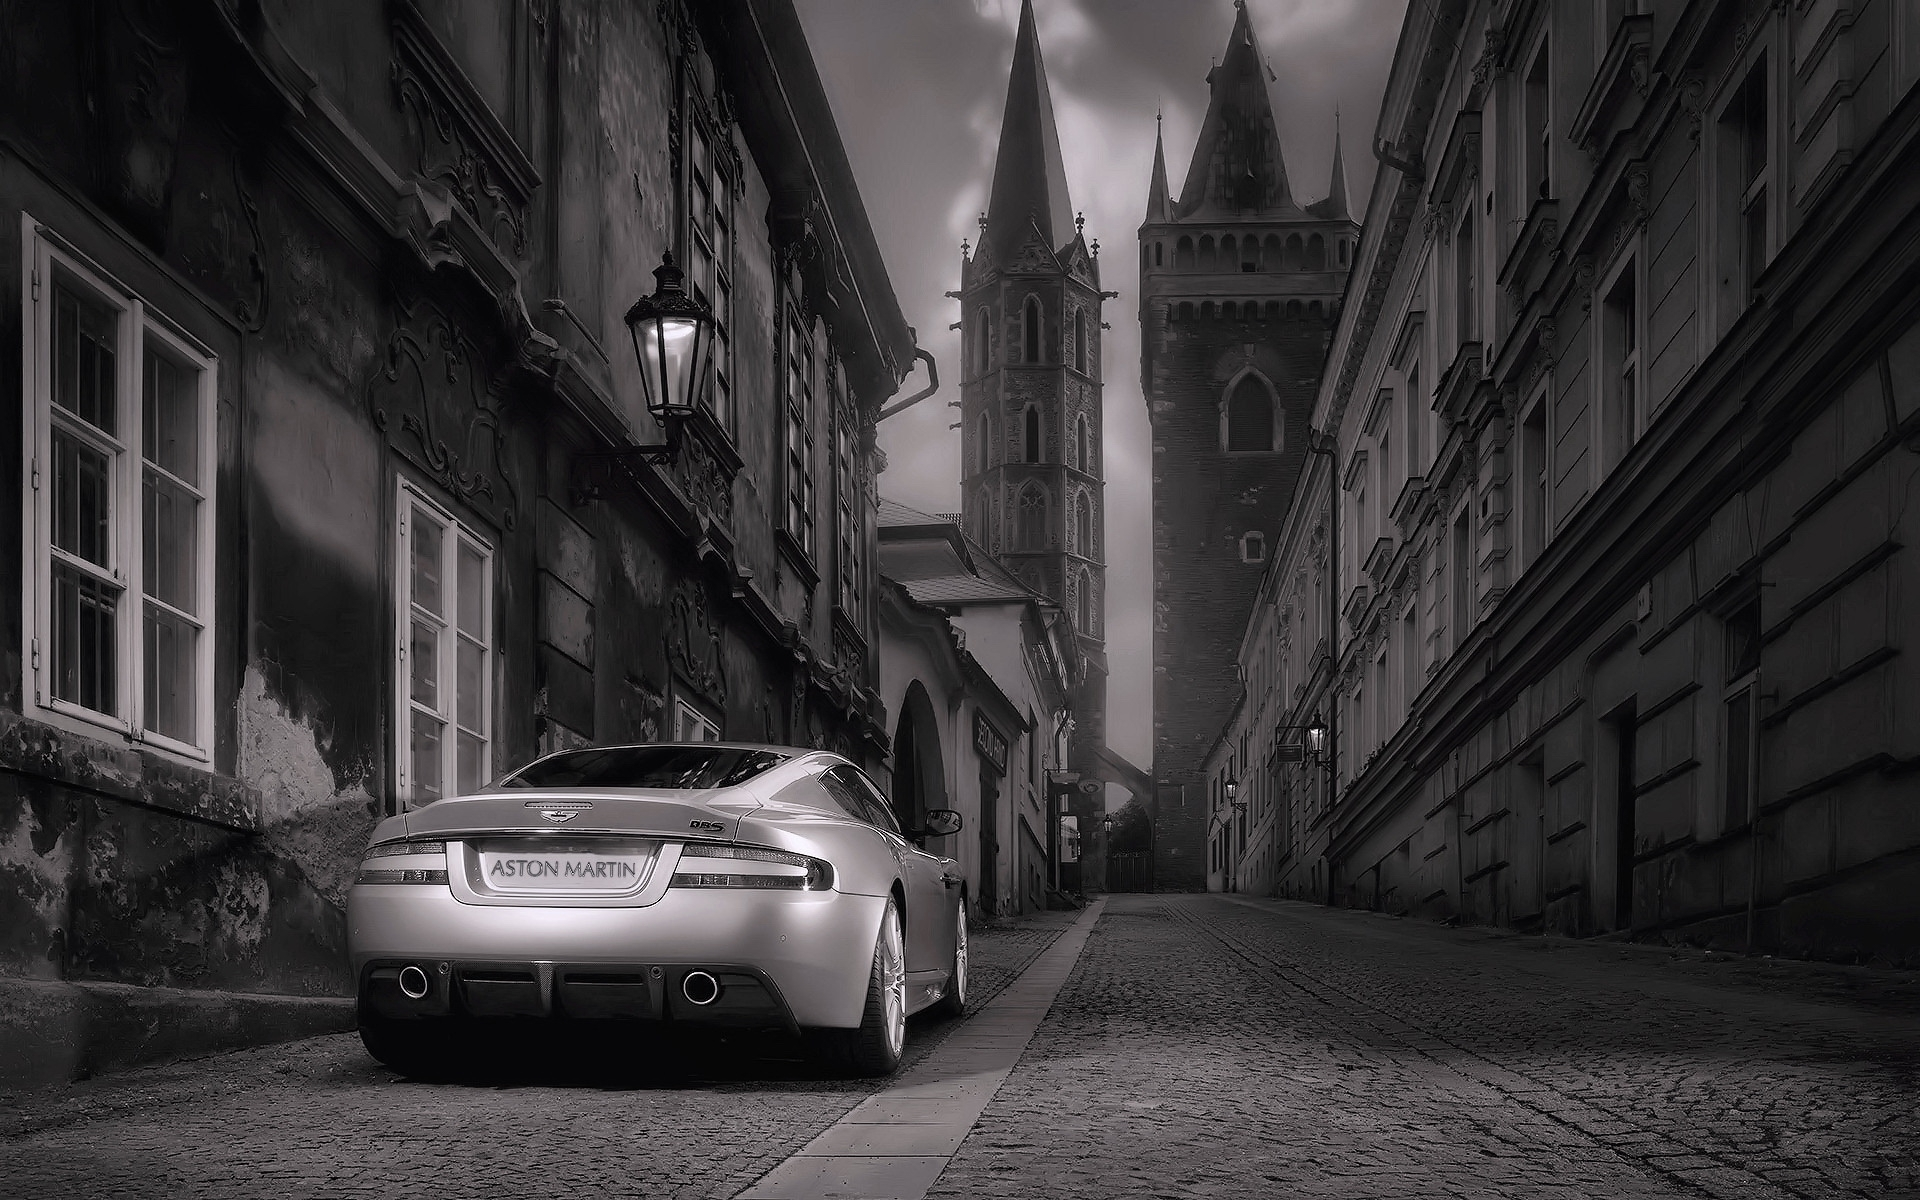 6161 download wallpaper Transport, Auto, Streets, Aston Martin screensavers and pictures for free